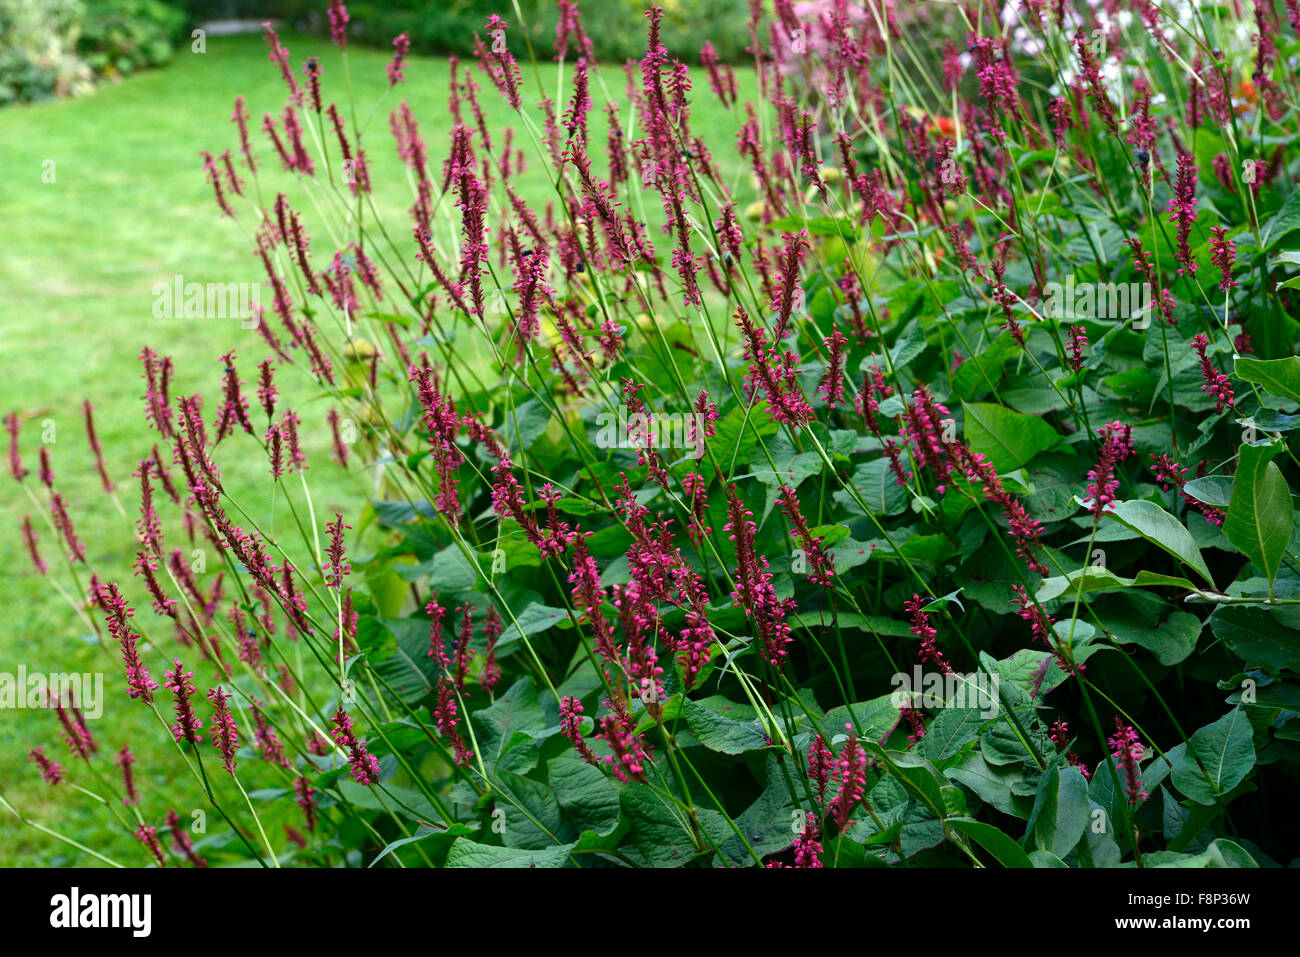 Persicaria Amplexicaulis Fat Domino Red Flower Late Flowering